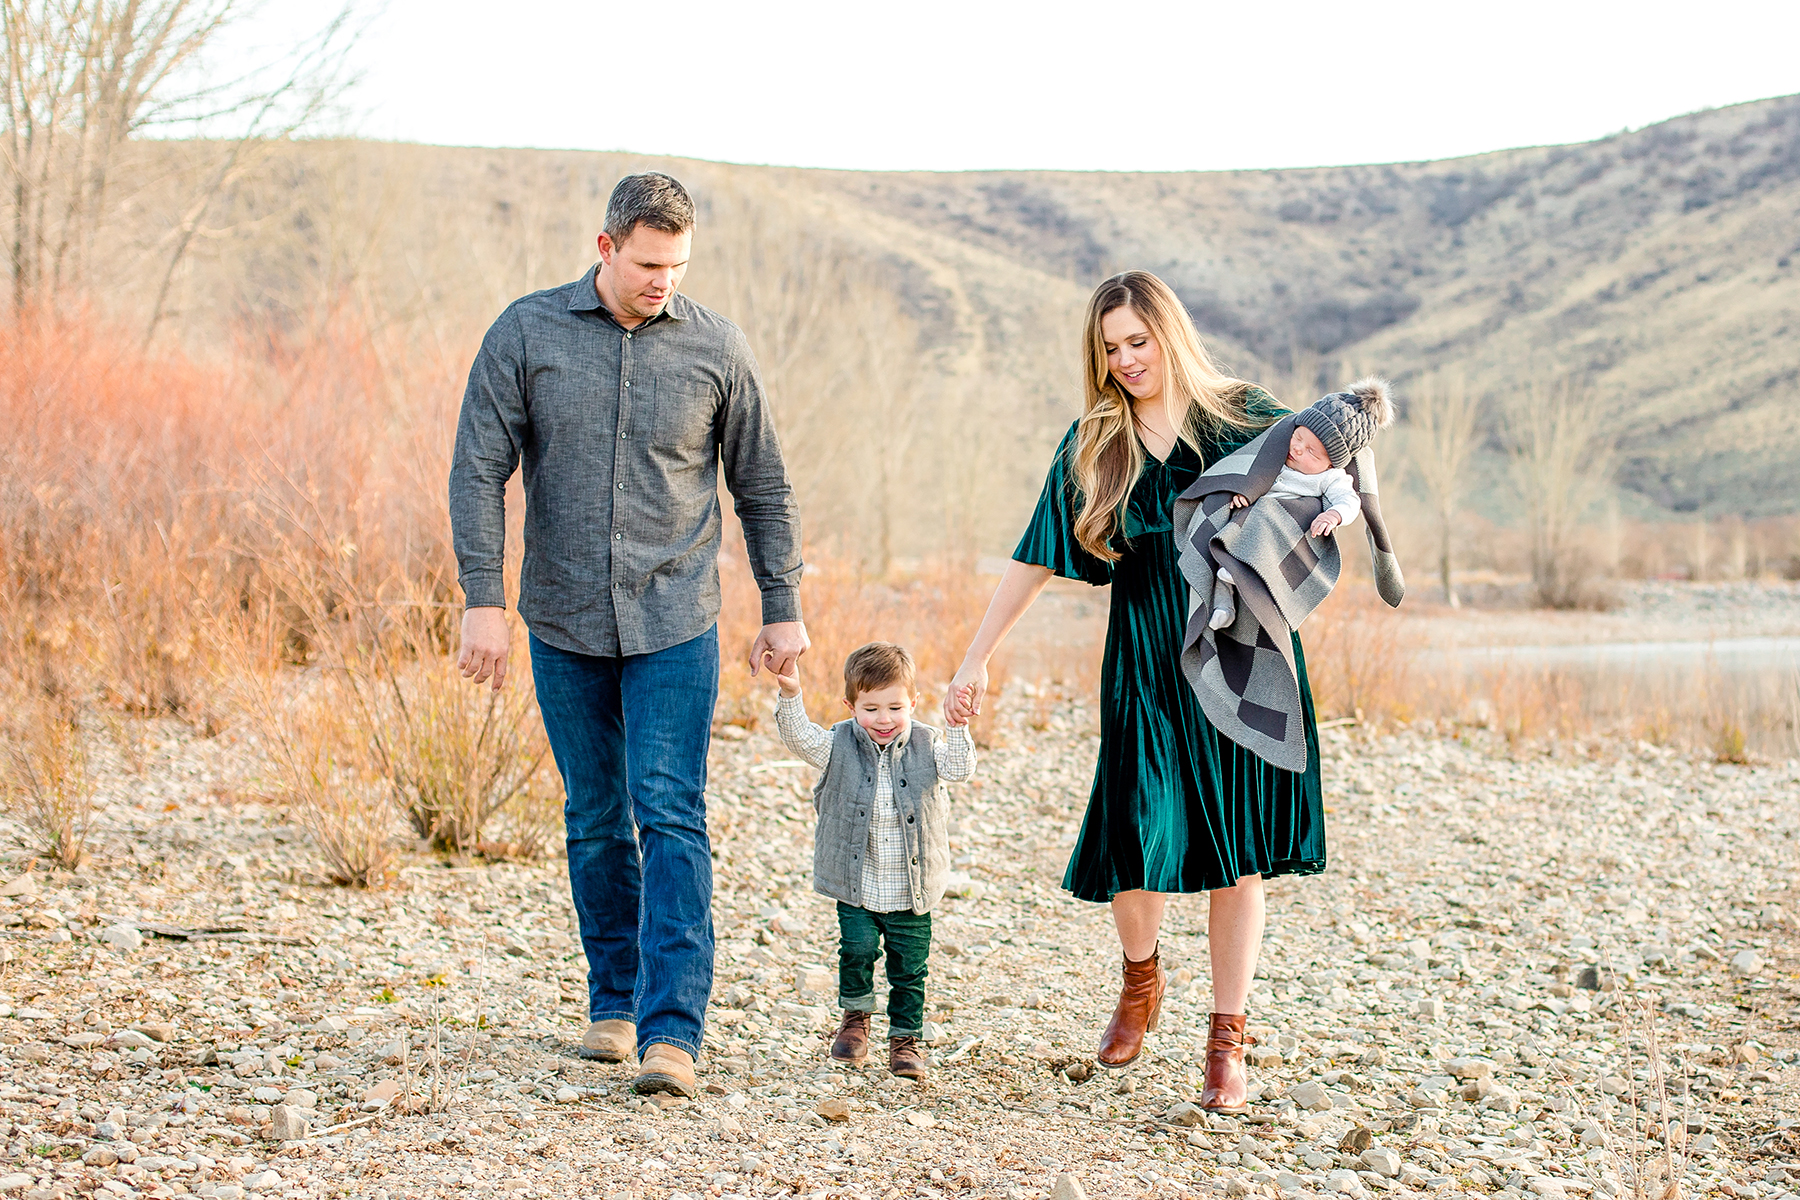 Heather Smith Photography | Utah Family Photographer | Utah Family Portraits | Provo Canyon | Deer Creek